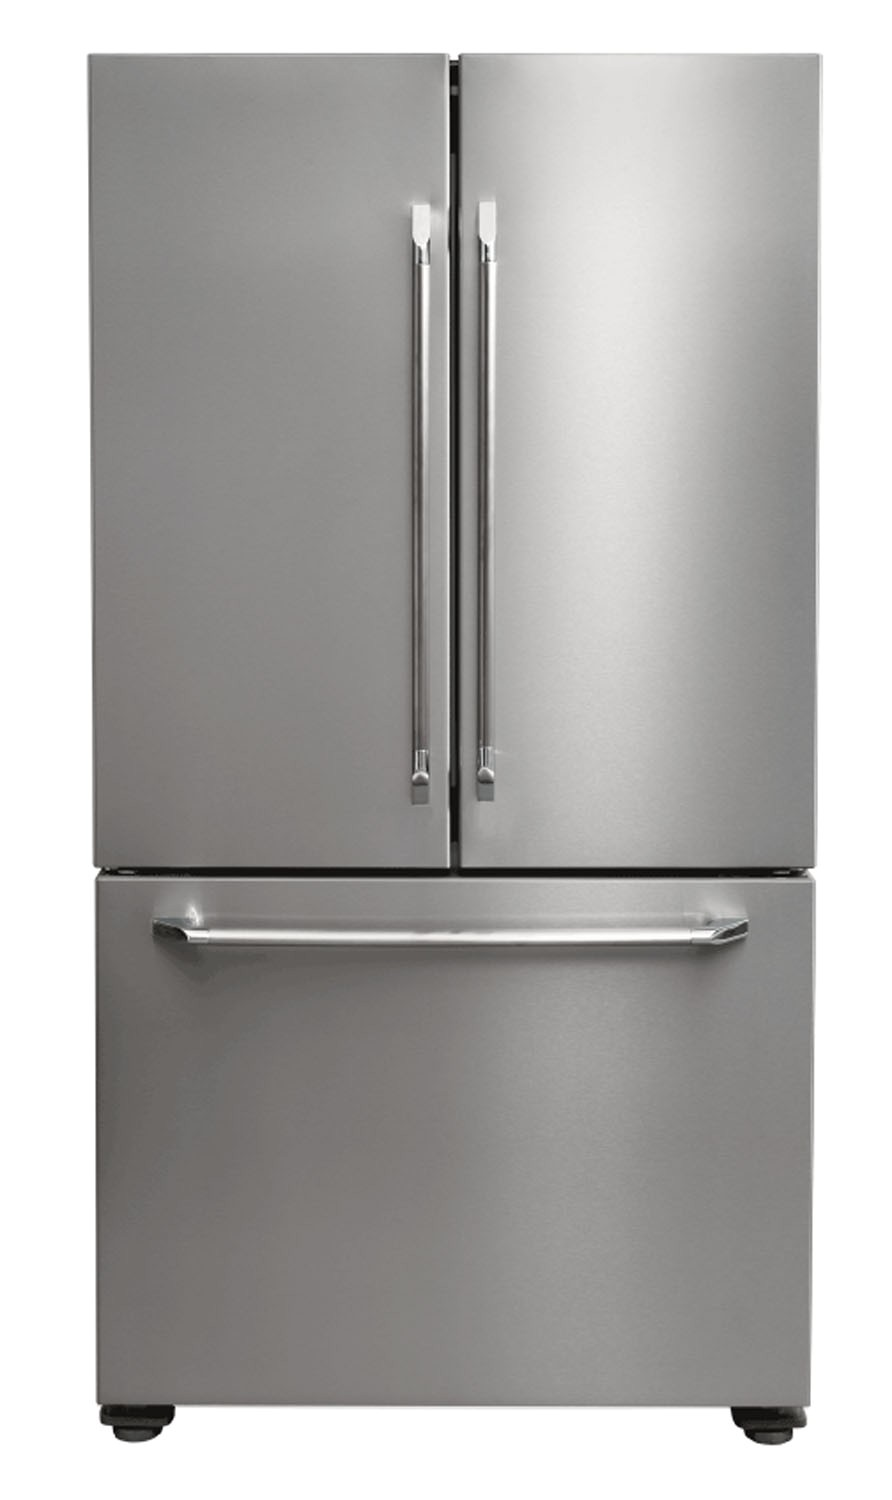 what is the largest cabinet depth refrigerator